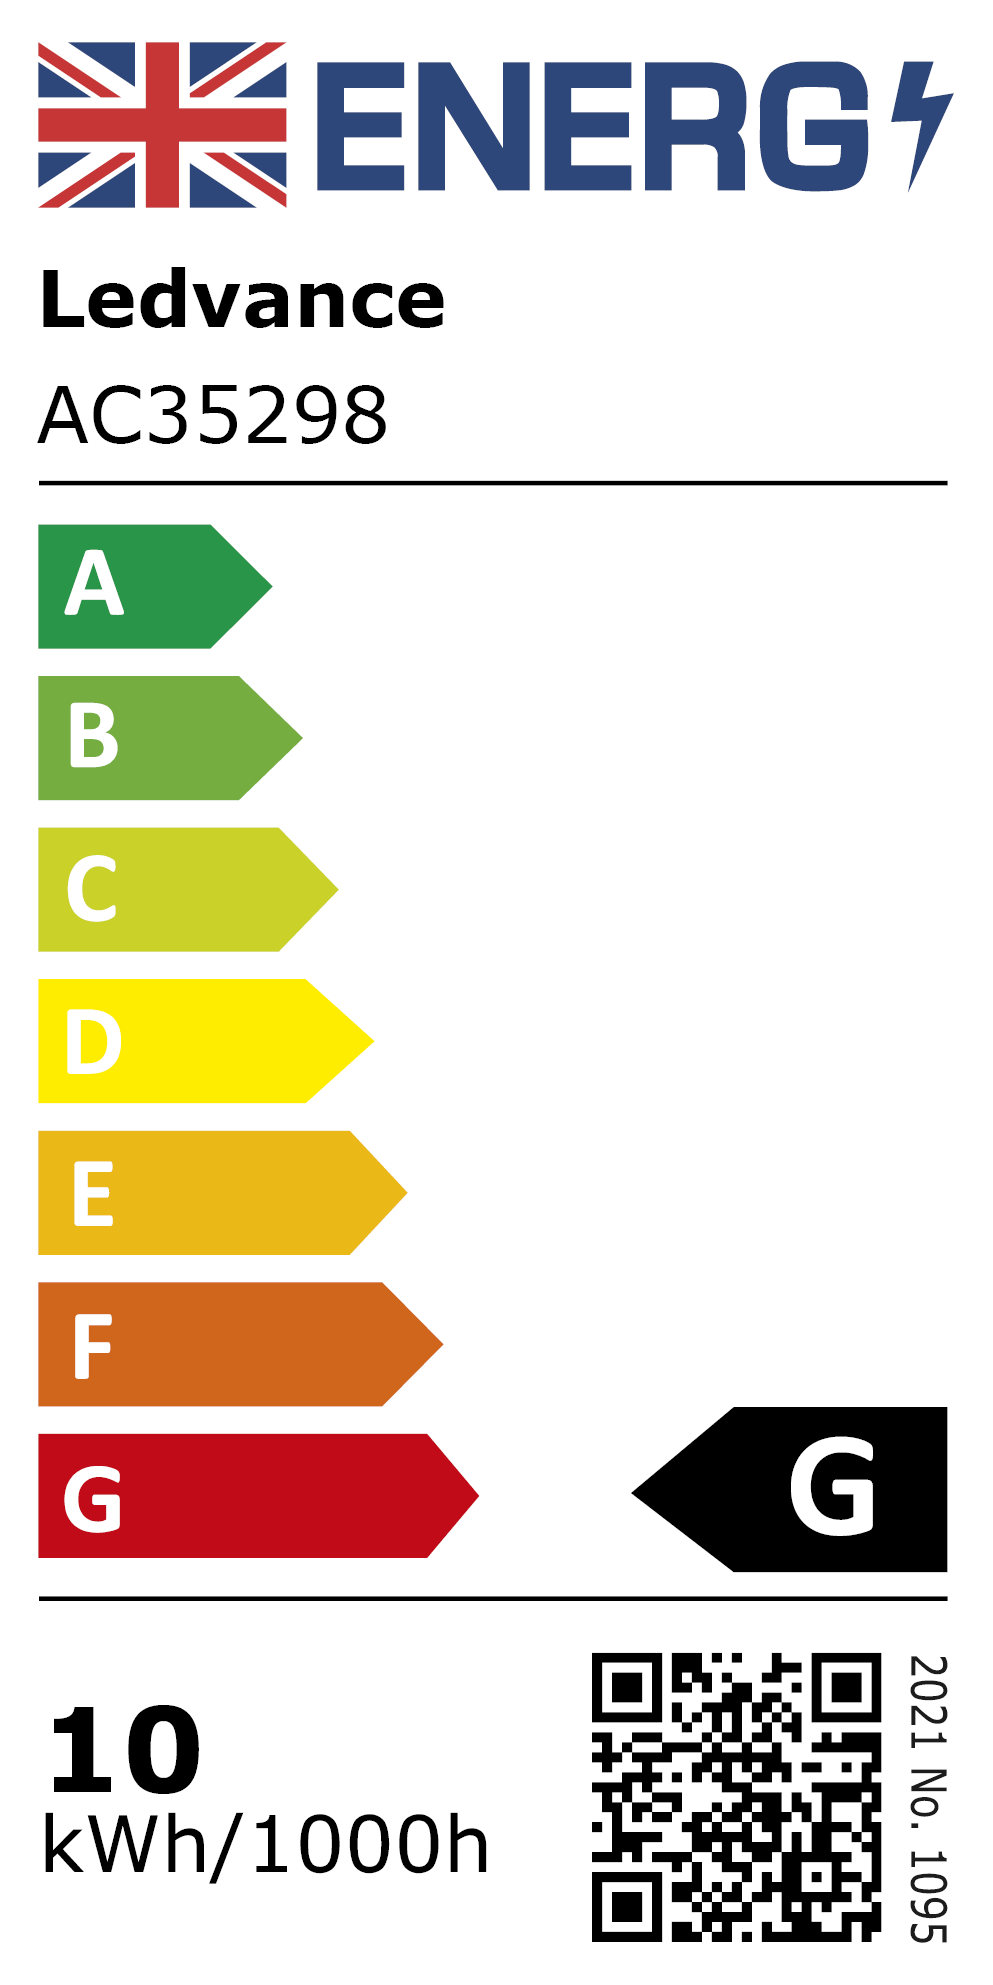 New 2021 Energy Rating Label: MPN AC35298